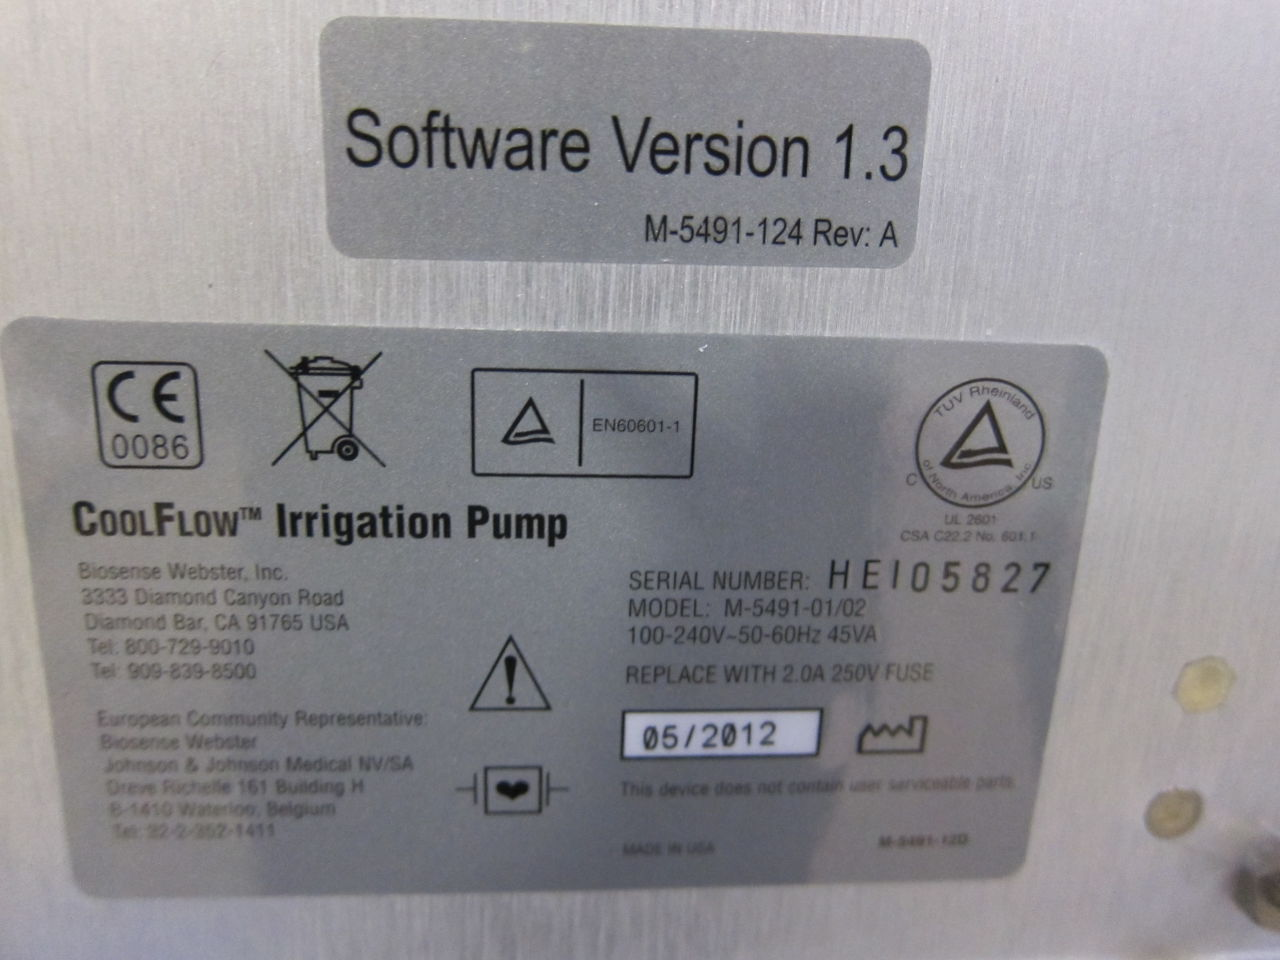 BIOSENSE WEBSTER CoolFlow Irrigation Pump